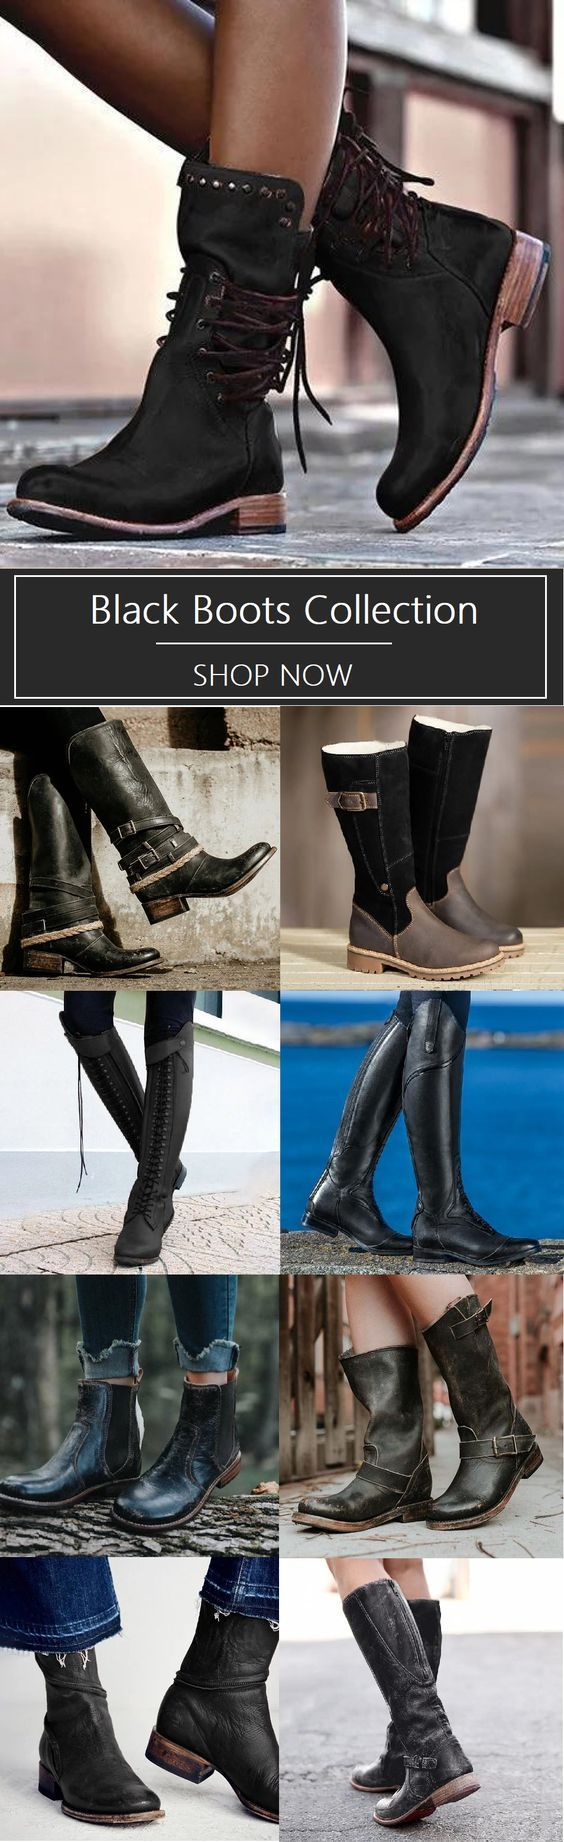 Hot Sale Boots Shoes& #SALE $25~$70 Only!SHOP NOW>> Pick One for Your Coming Spring.